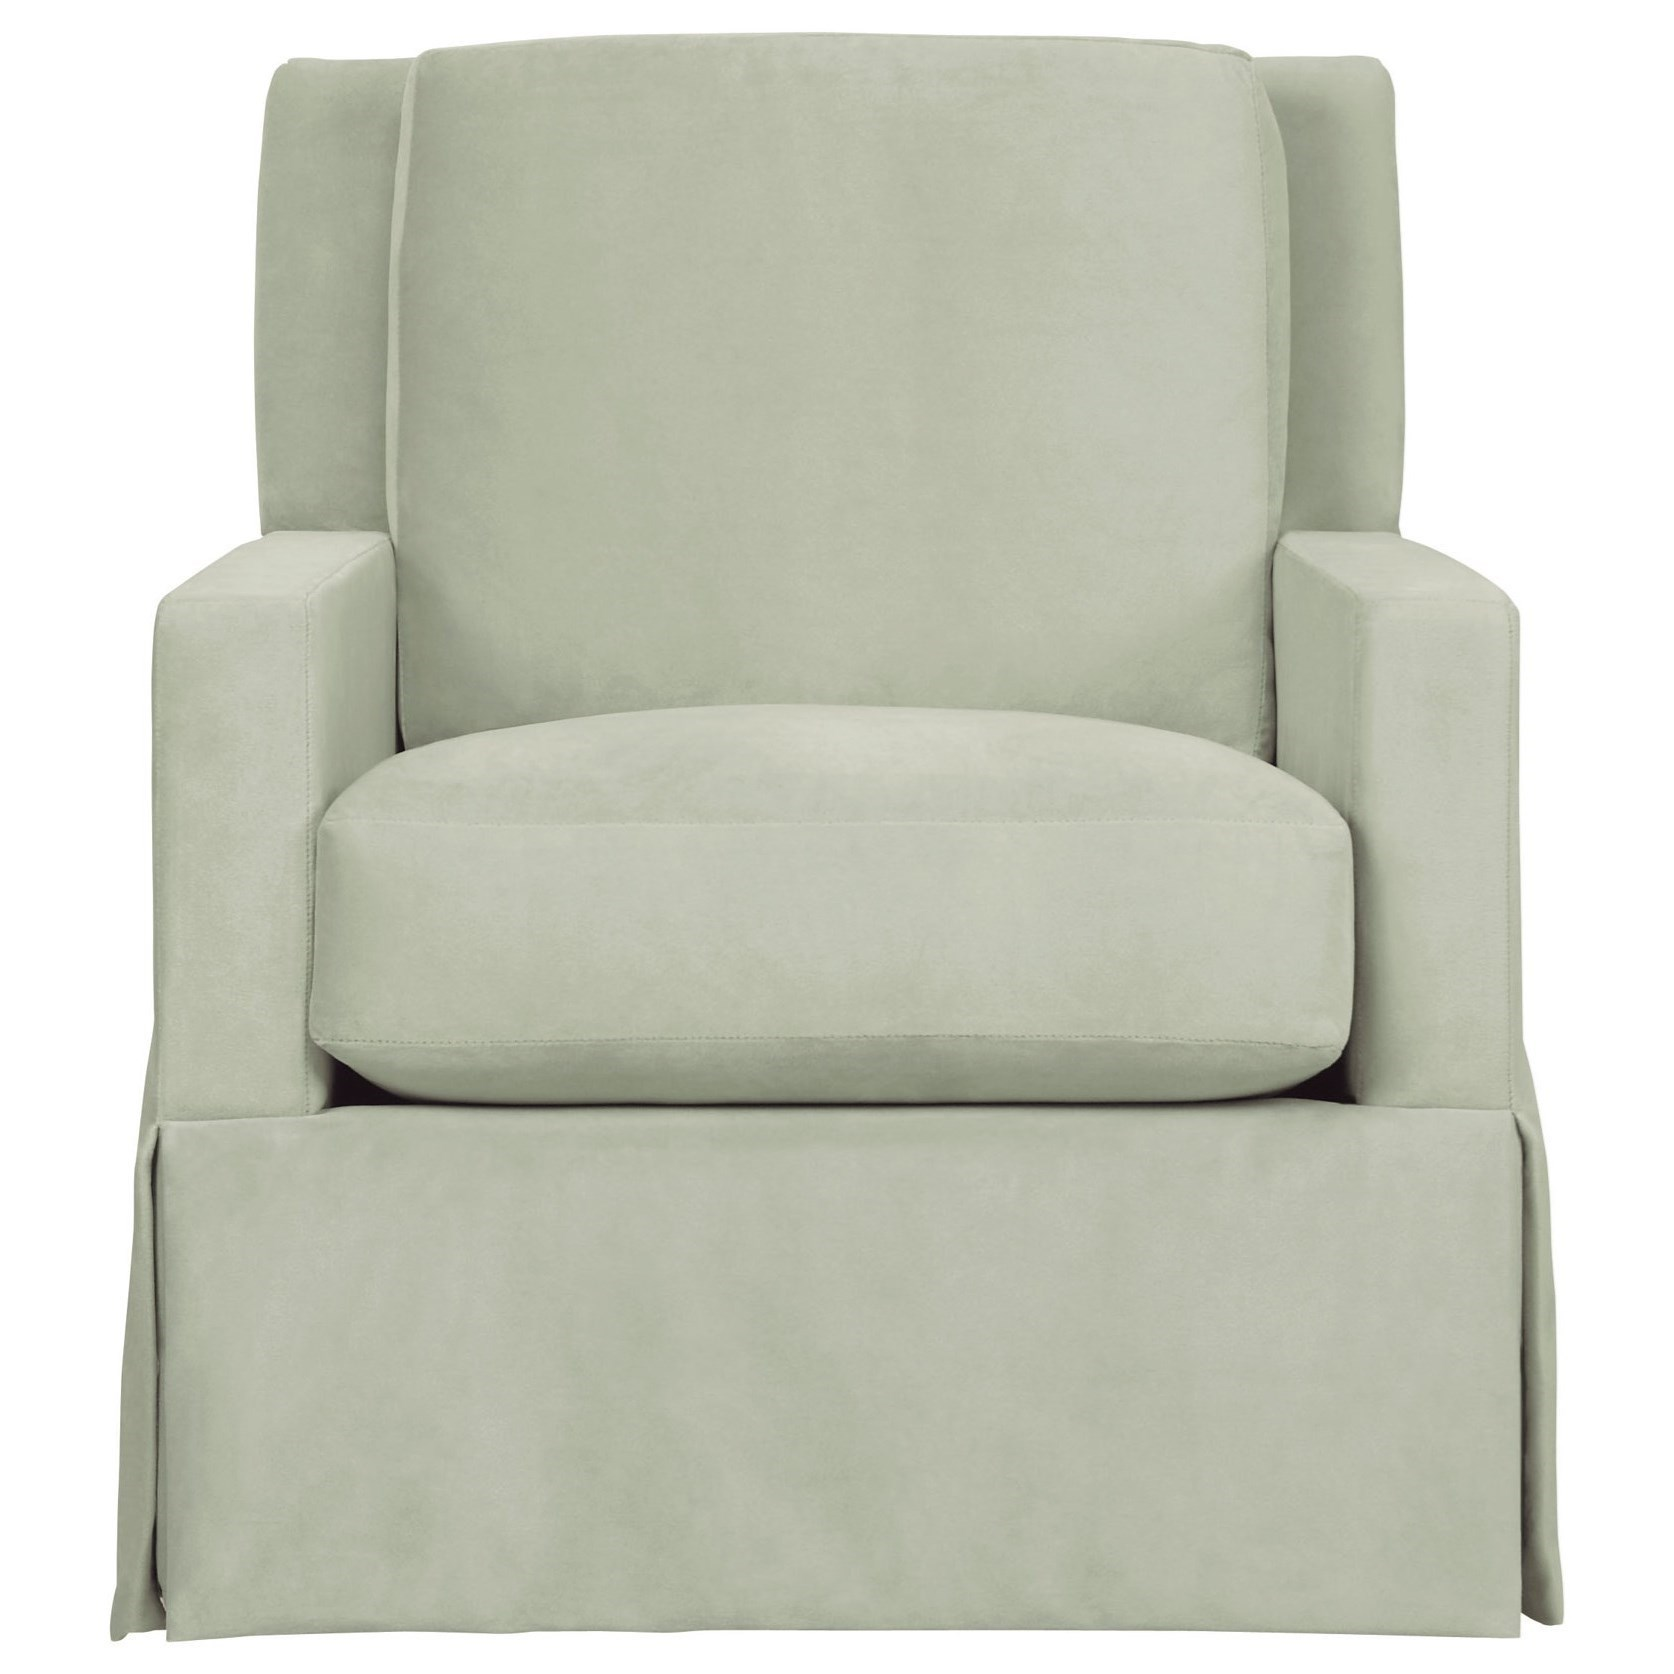 Bernhardt Interiors   Hastings Transitional Upholstered Swivel Chair